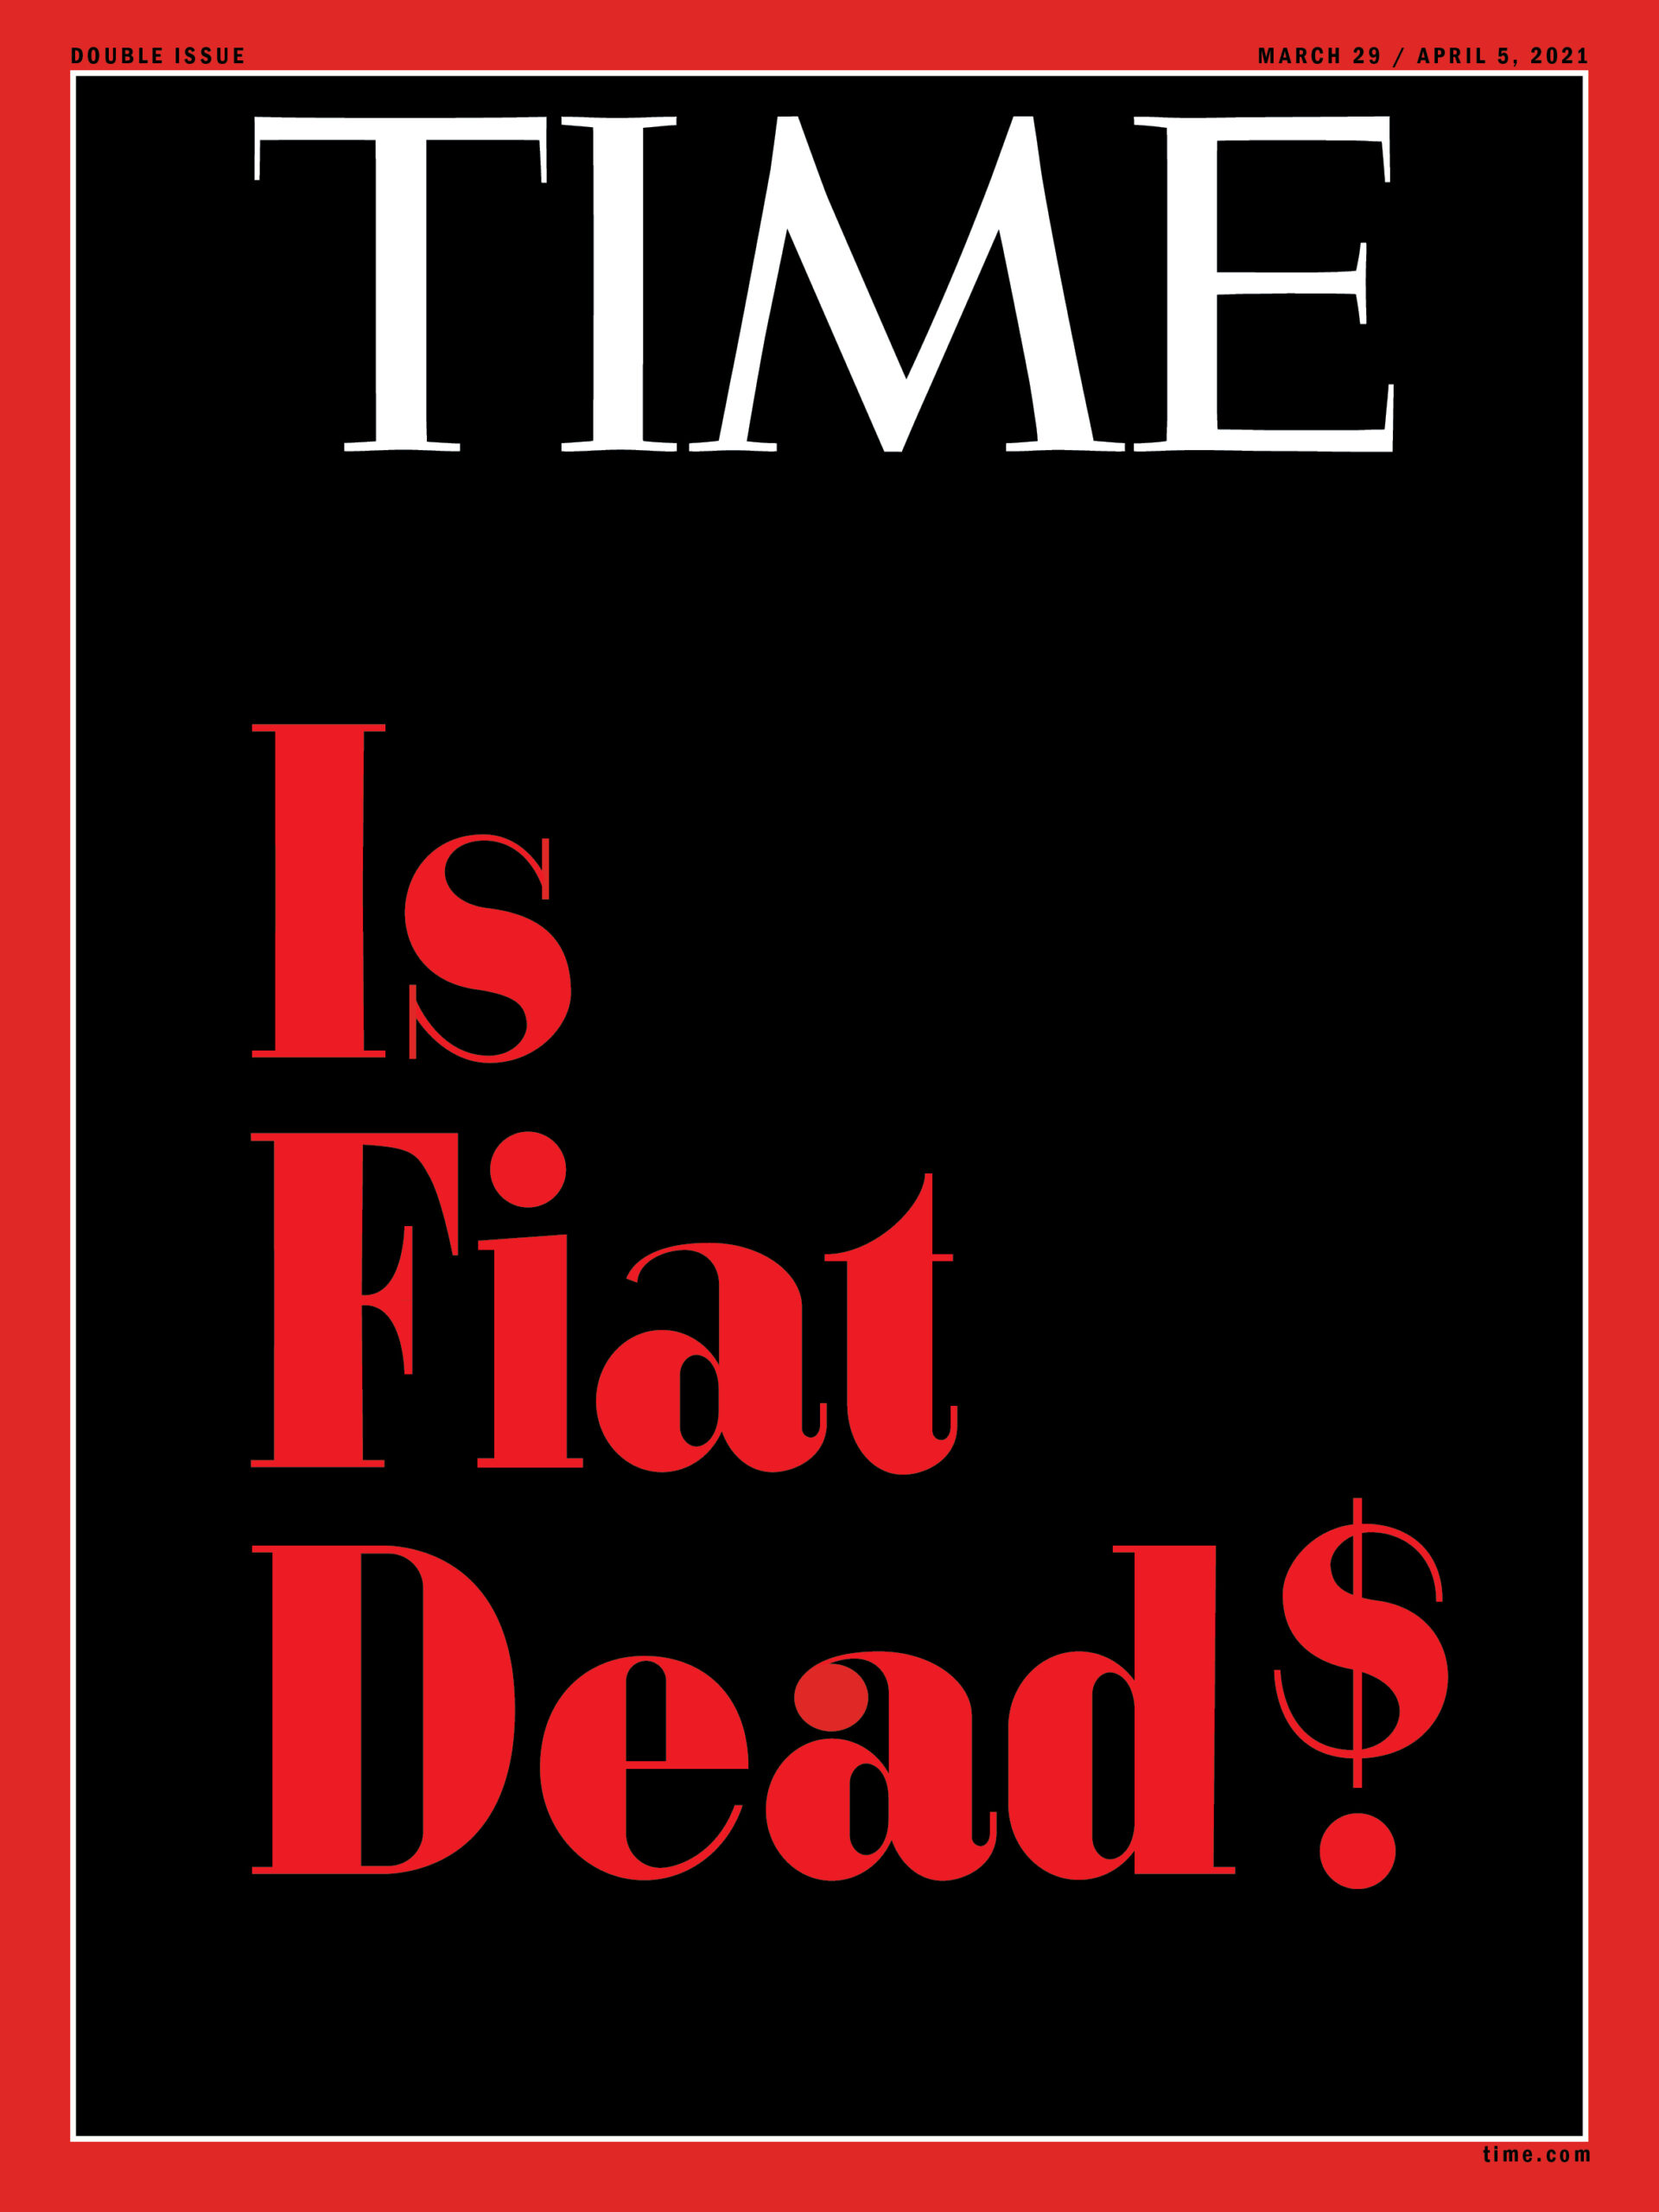 Time's upcoming magazine cover